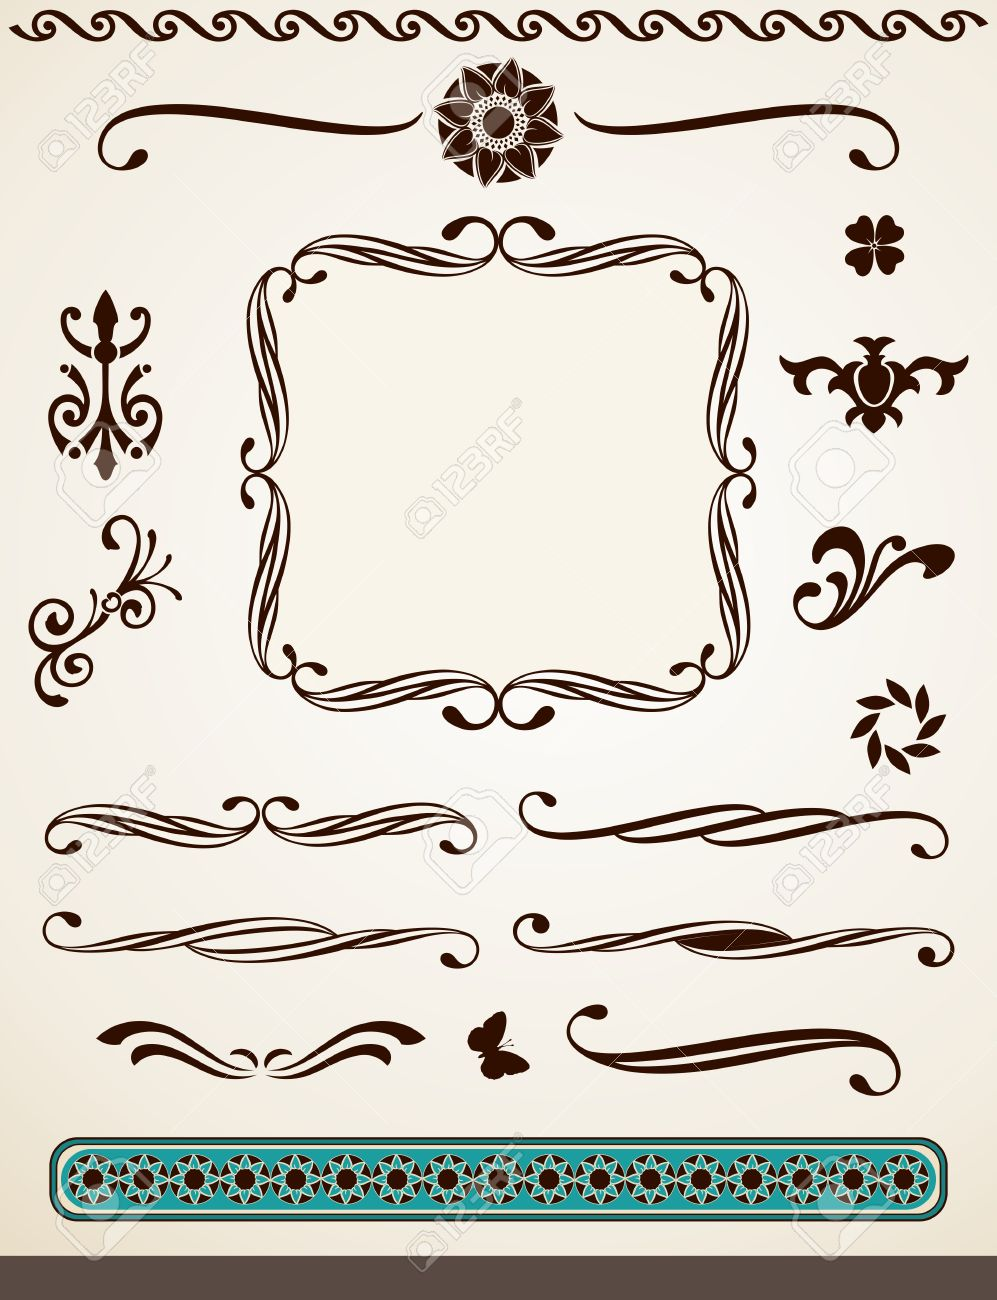 Vintage Page Decorations, Dividers, Borders And Text Frame Royalty ...